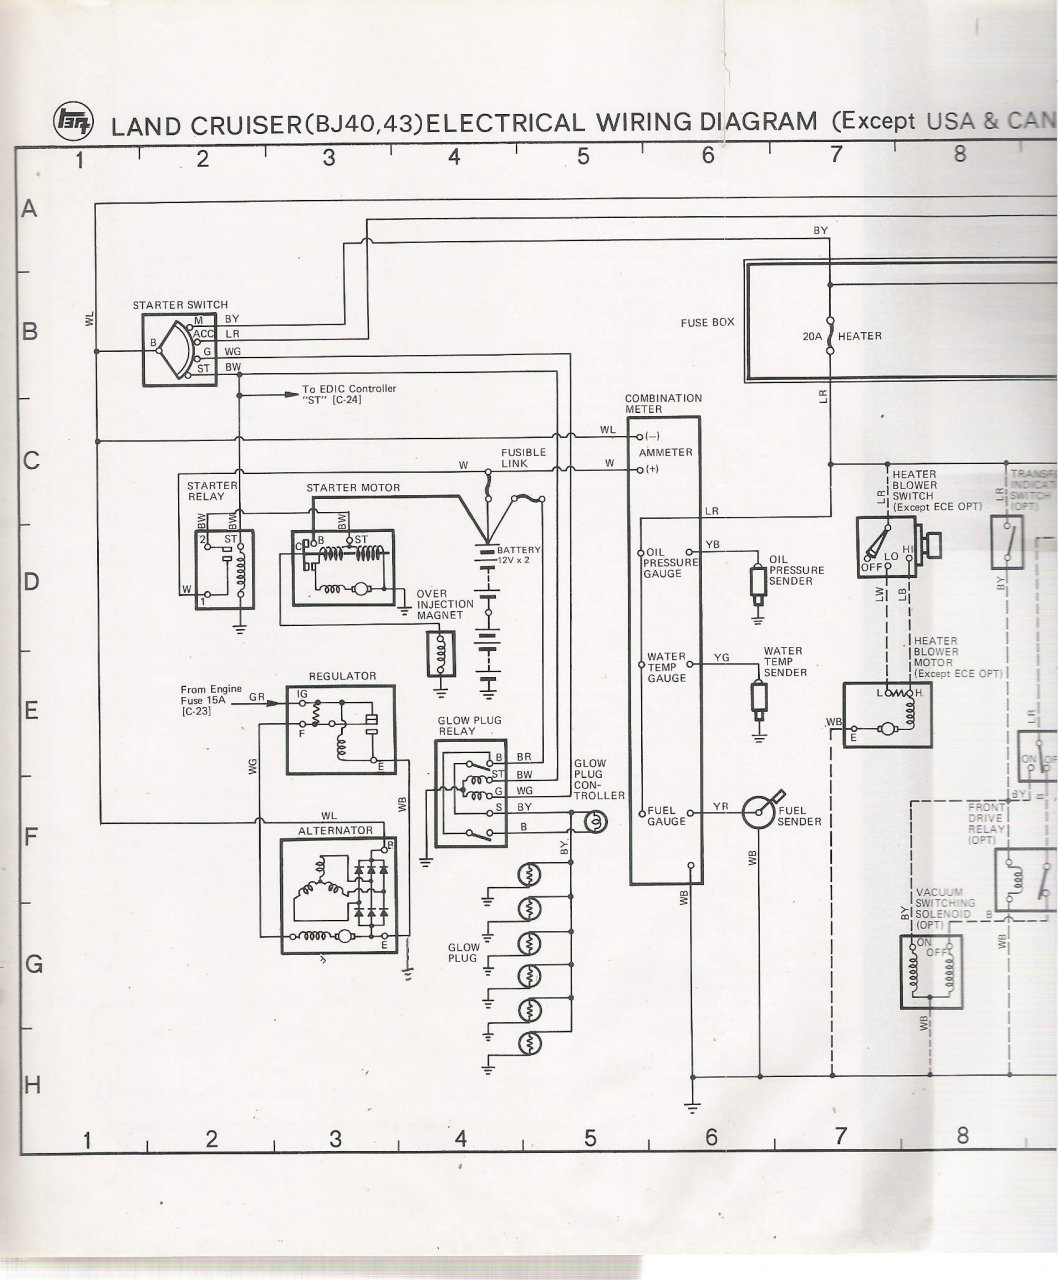 Where can I find a Wiring Schematic for a BJ40 Diesel? | IH8MUD Forum